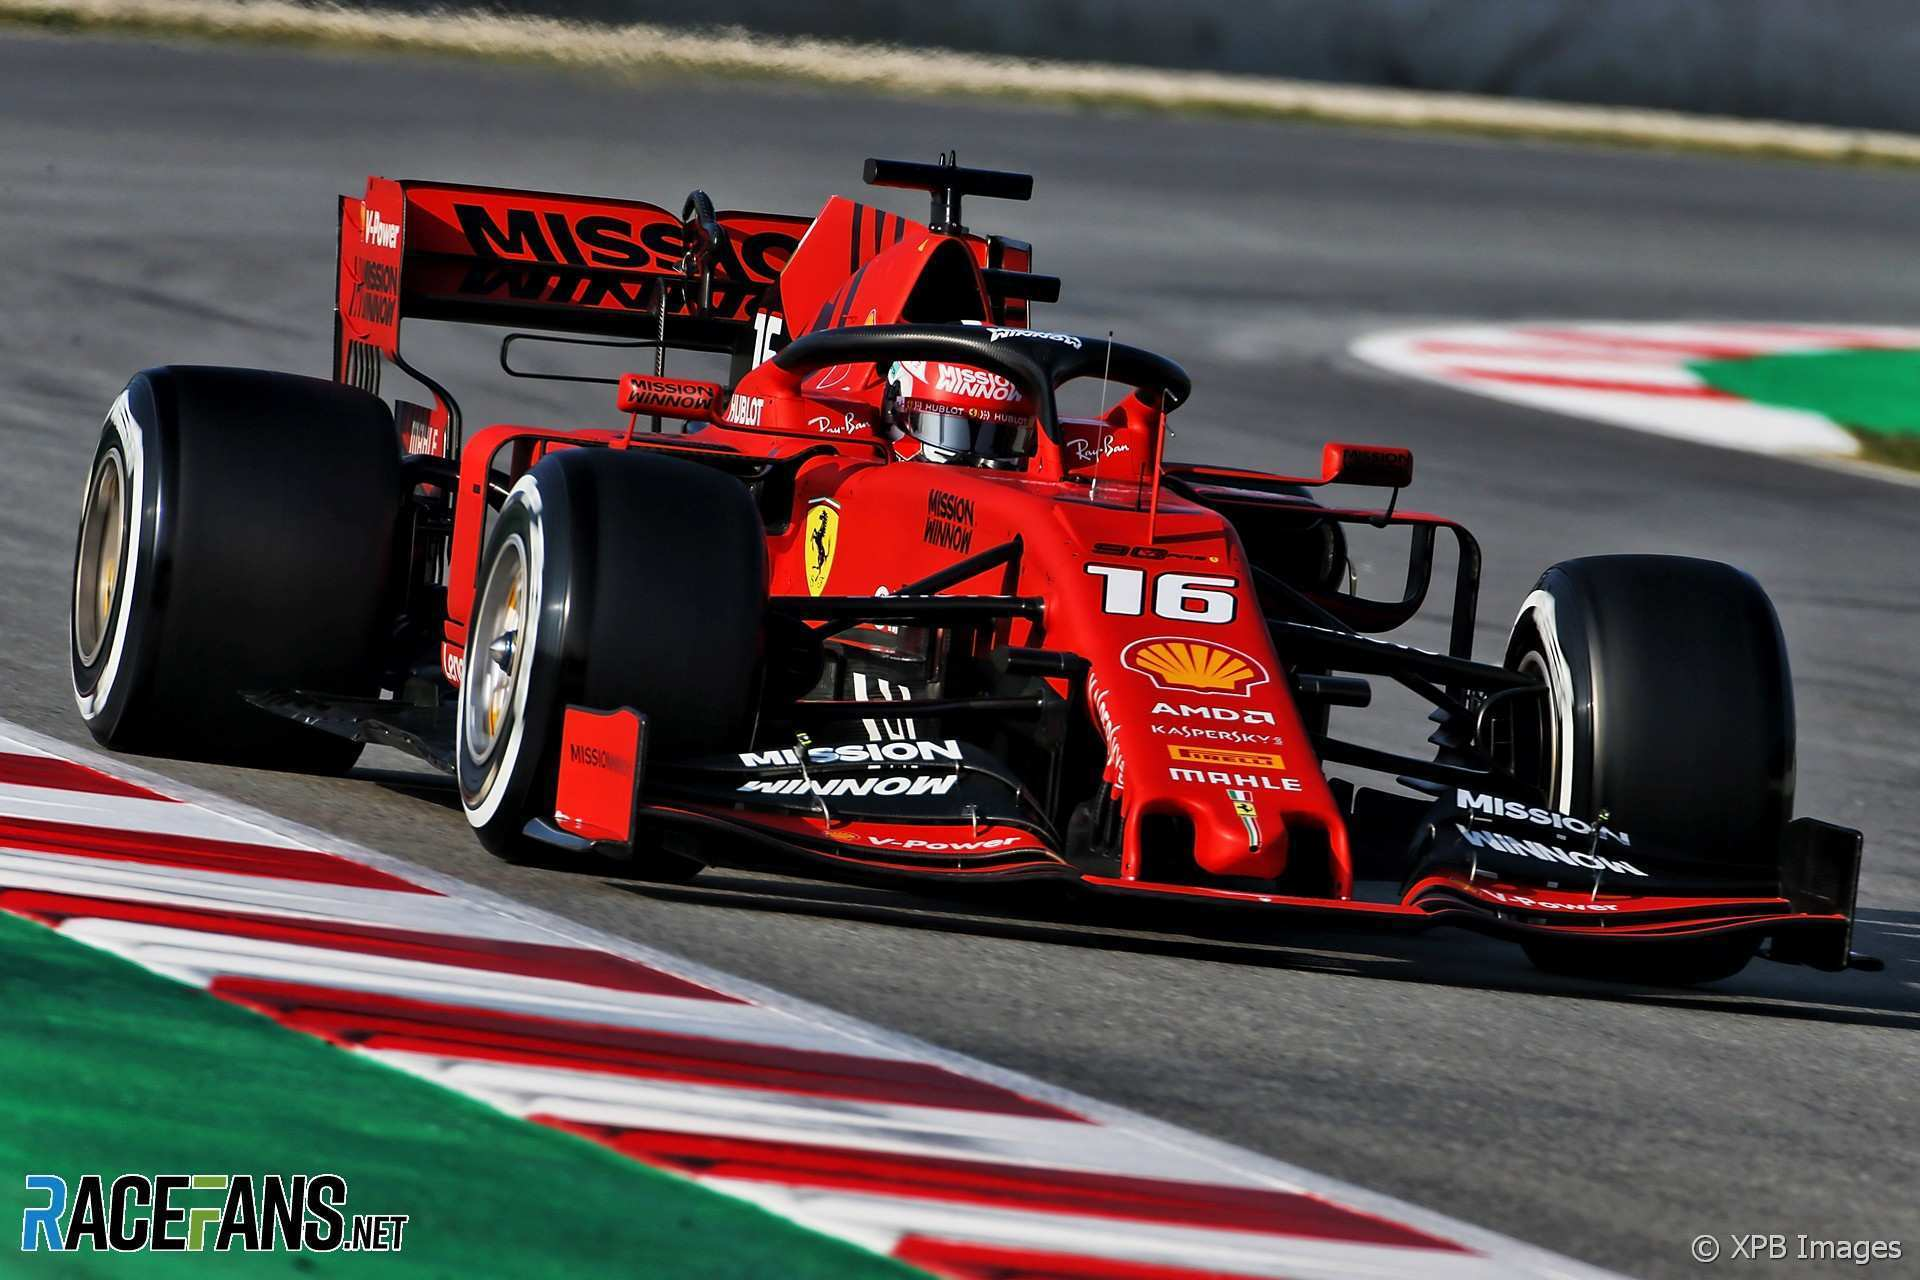 68 Best Review Best Ferrari Leclerc 2019 Specs And Review History with Best Ferrari Leclerc 2019 Specs And Review